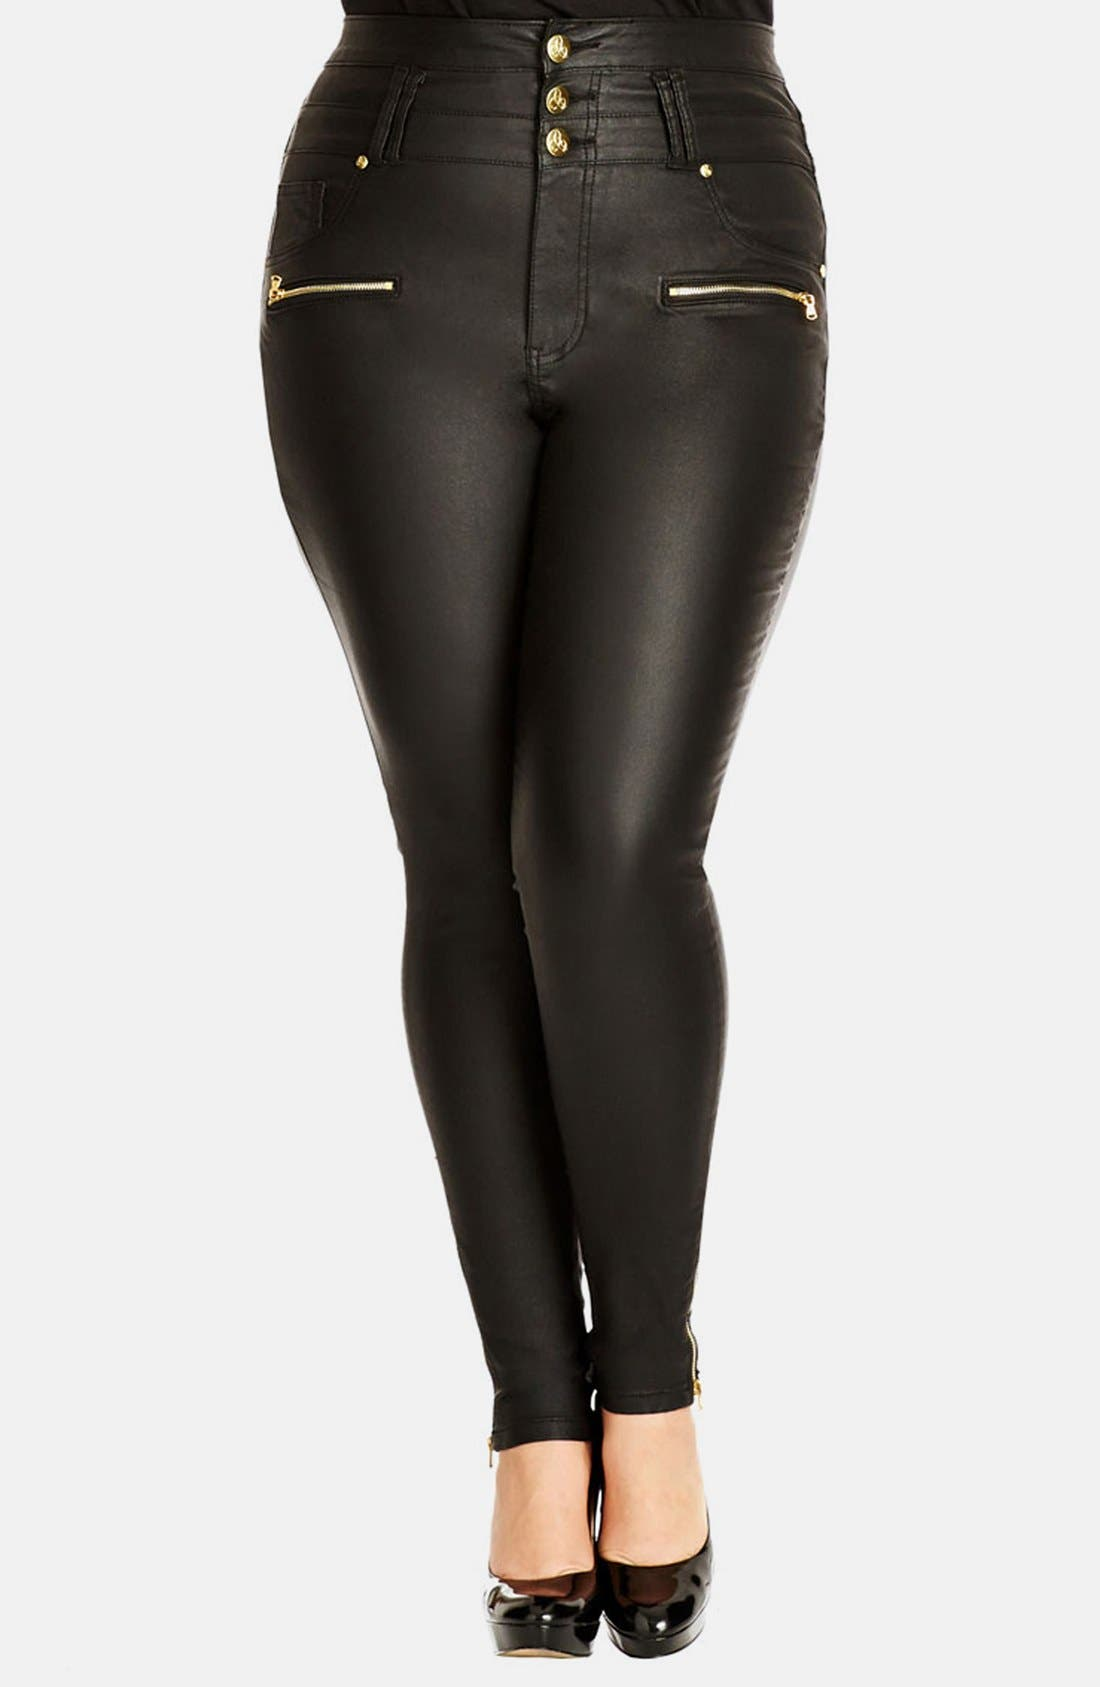 Alternate Image 1 Selected - City Chic 'Pick Me Up' Stretch Skinny Jeans (Black) (Plus Size)